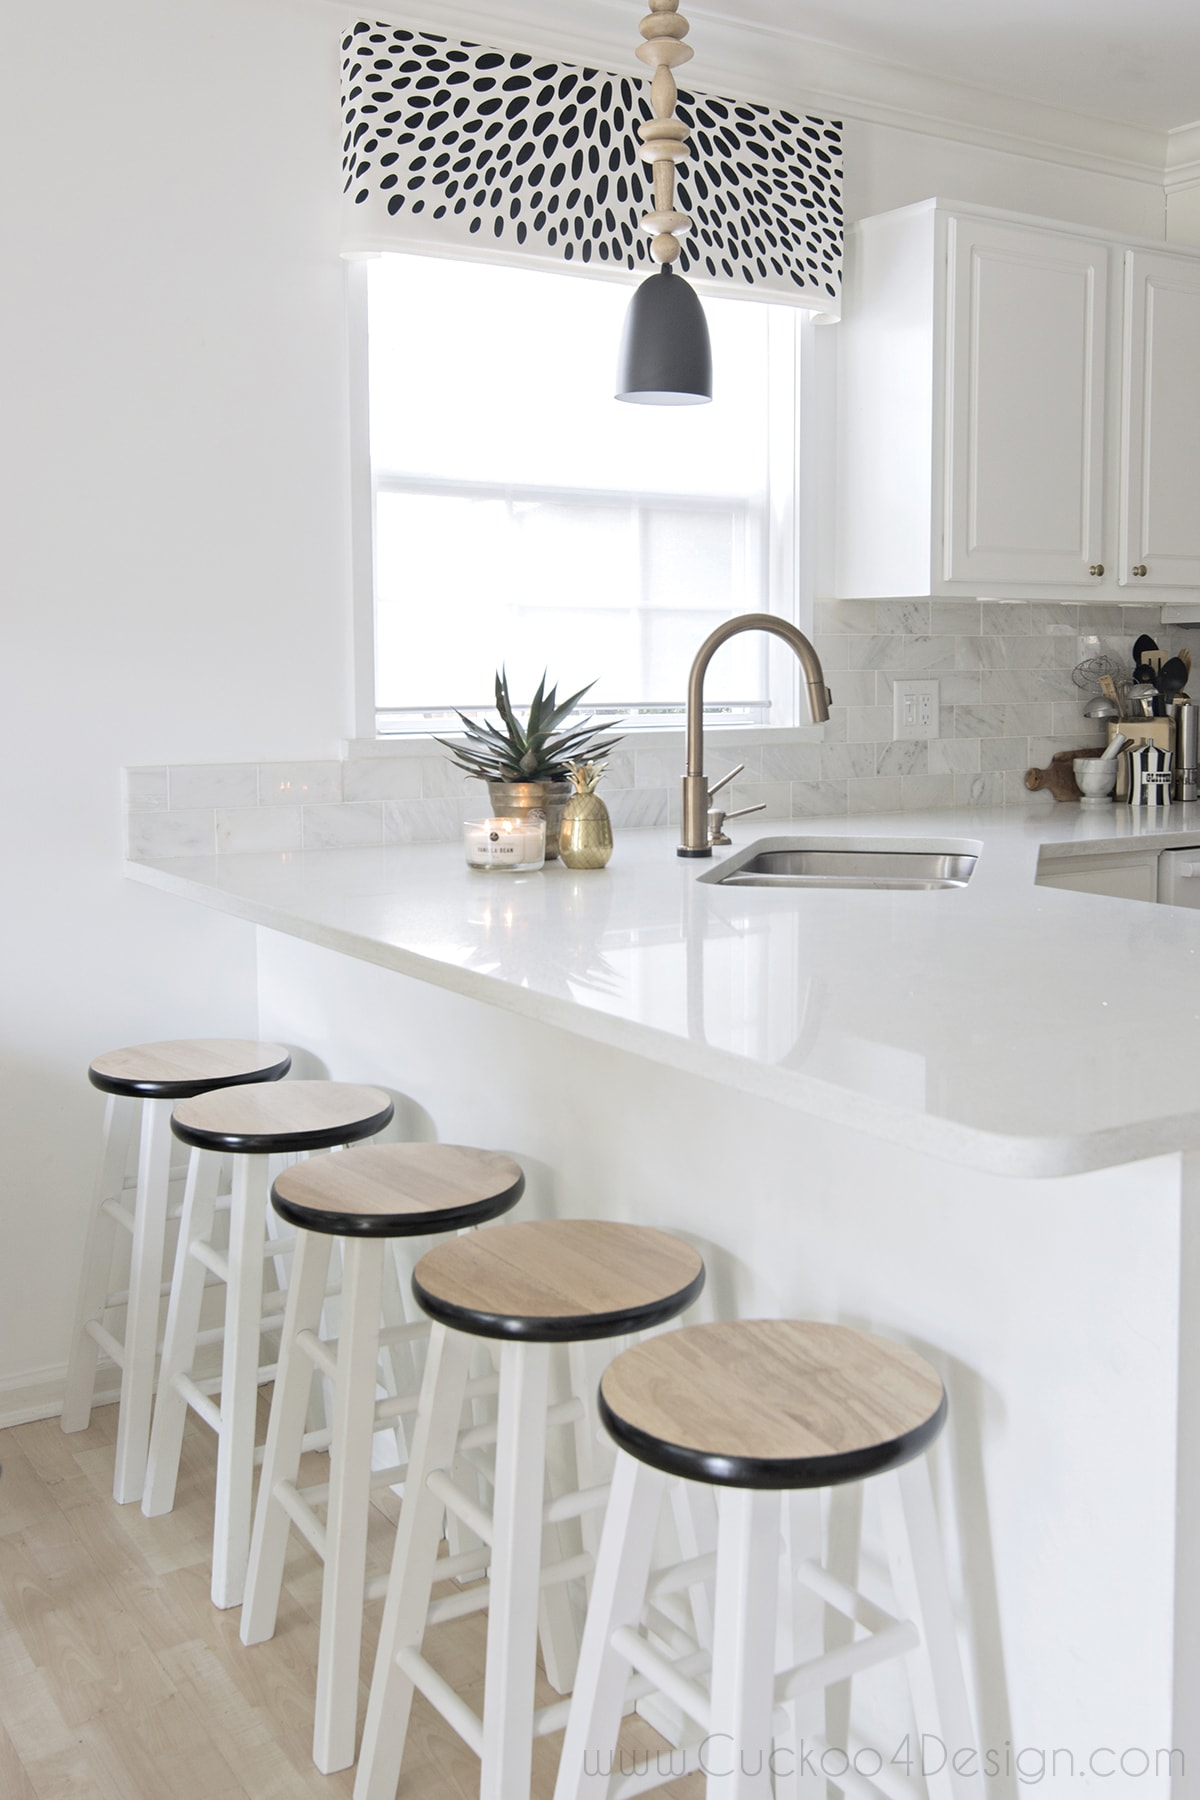 Black Kitchen Accents. Black_white_and_gold_kitchen_cuckoo4design_4.  Black_white_and_gold_kitchen_cuckoo4design_7